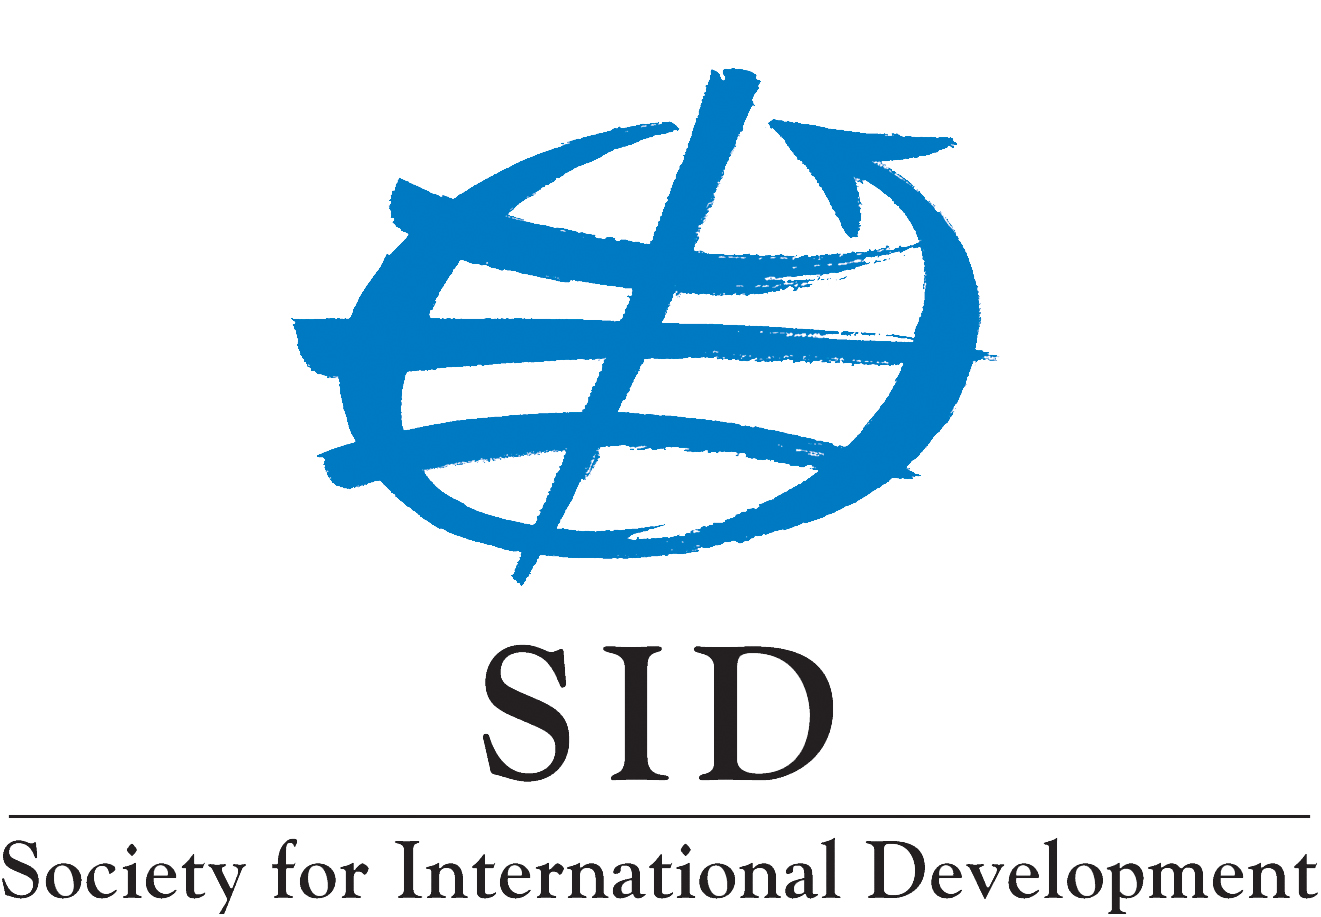 Society for international develoment